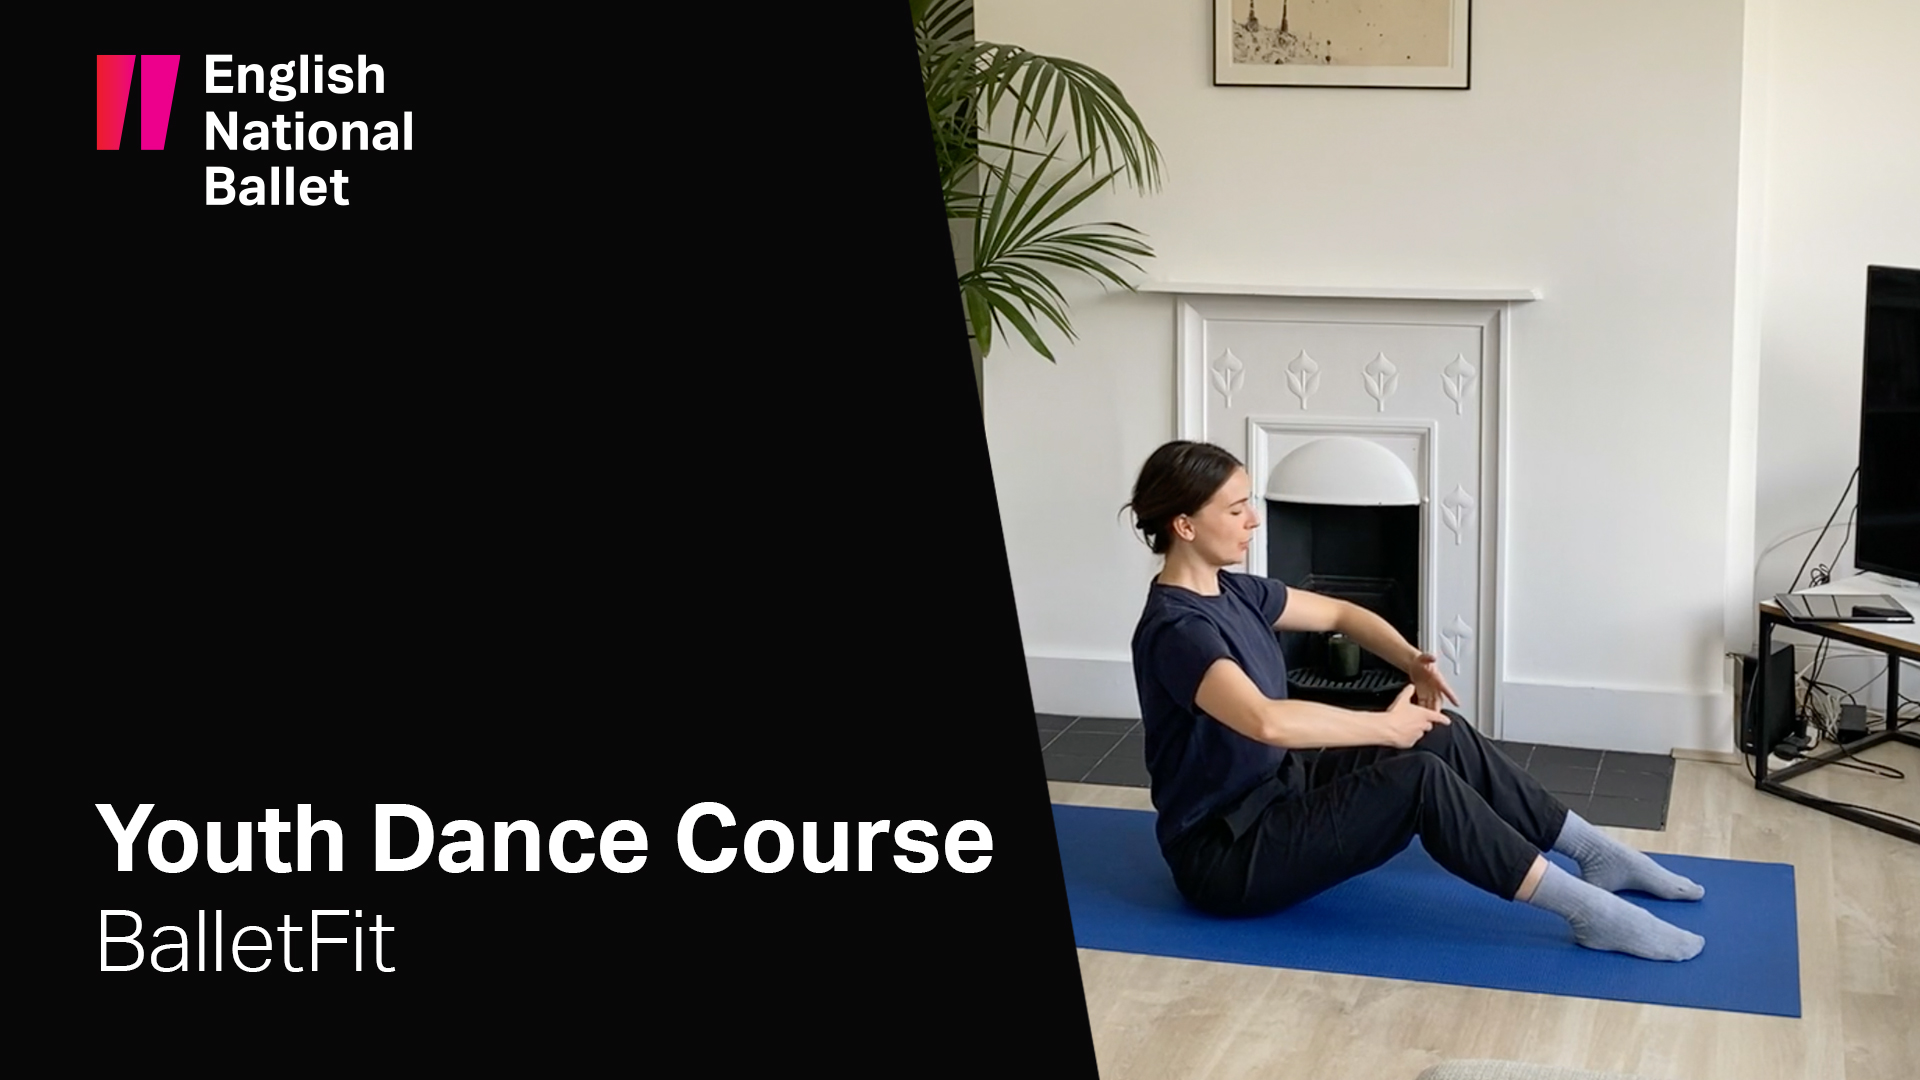 Youth Dance Course: BalletFit with Lucy Lowndes | English National Ballet